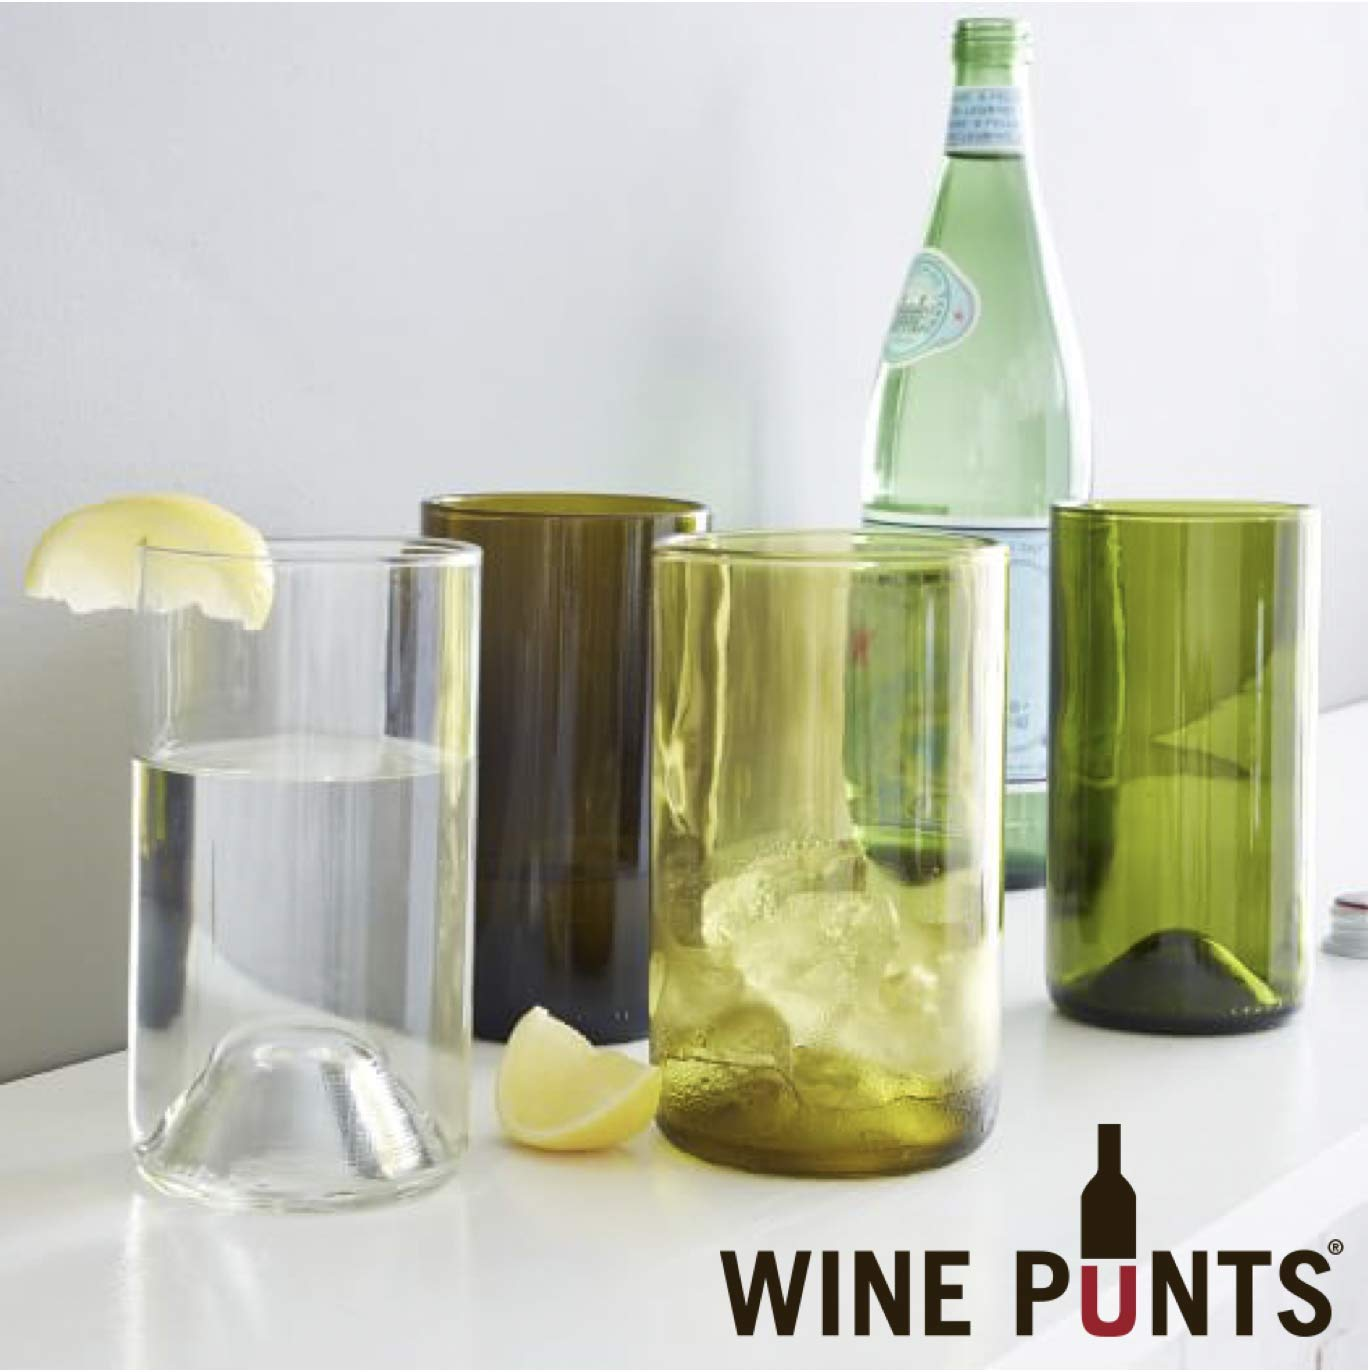 Wine Punts WP16AQUA-S-4 Drinking Glasses Set Of 4 Tall Aqua